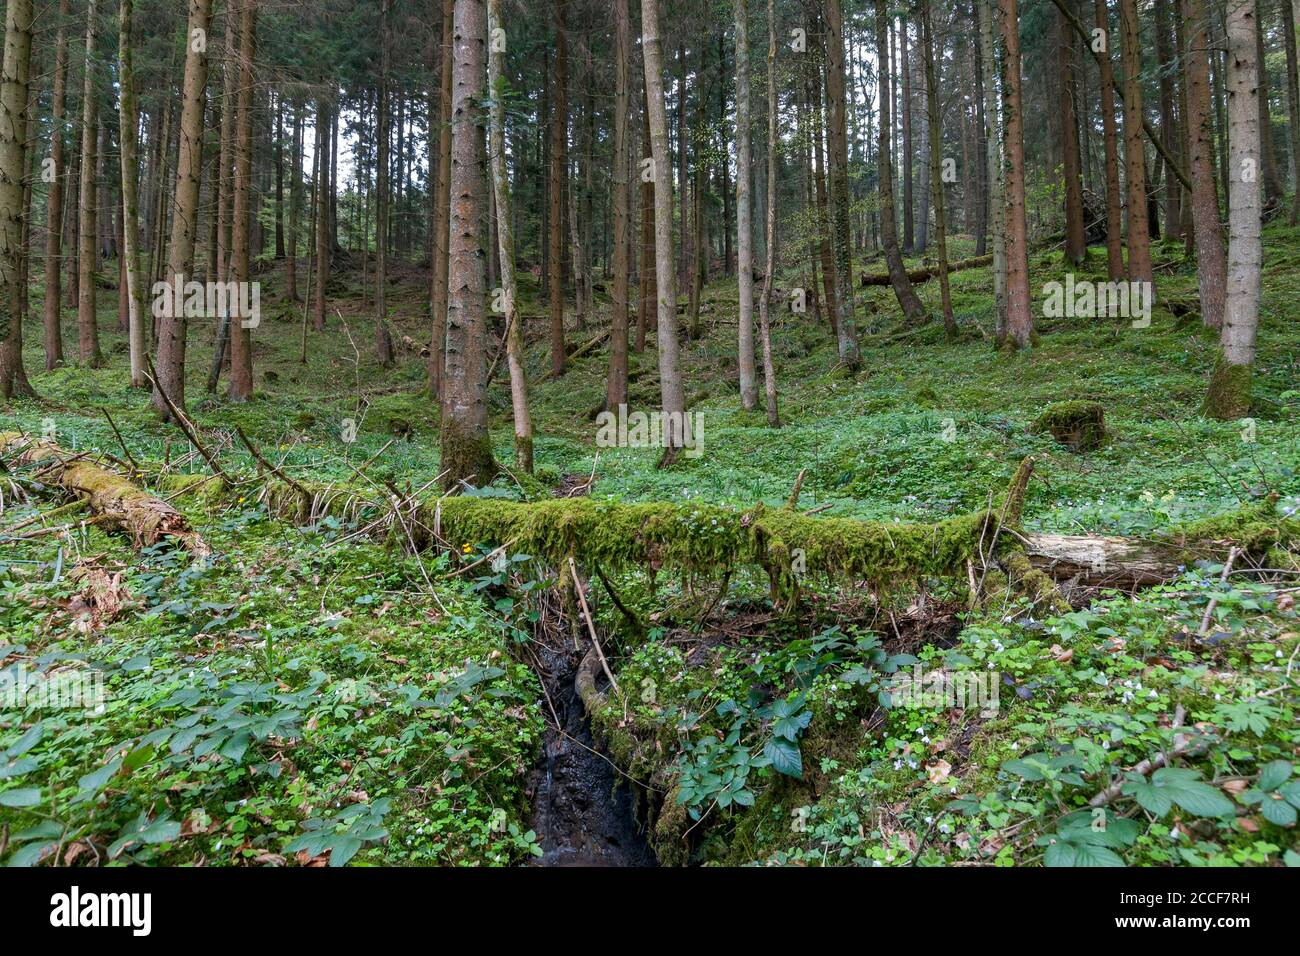 Germany, Baden-Württemberg, Murrhardt, Bannwald along the hiking trail through the Hörschbach Gorge in the Schwäbisch-Franconian Forest Nature Park. Stock Photo